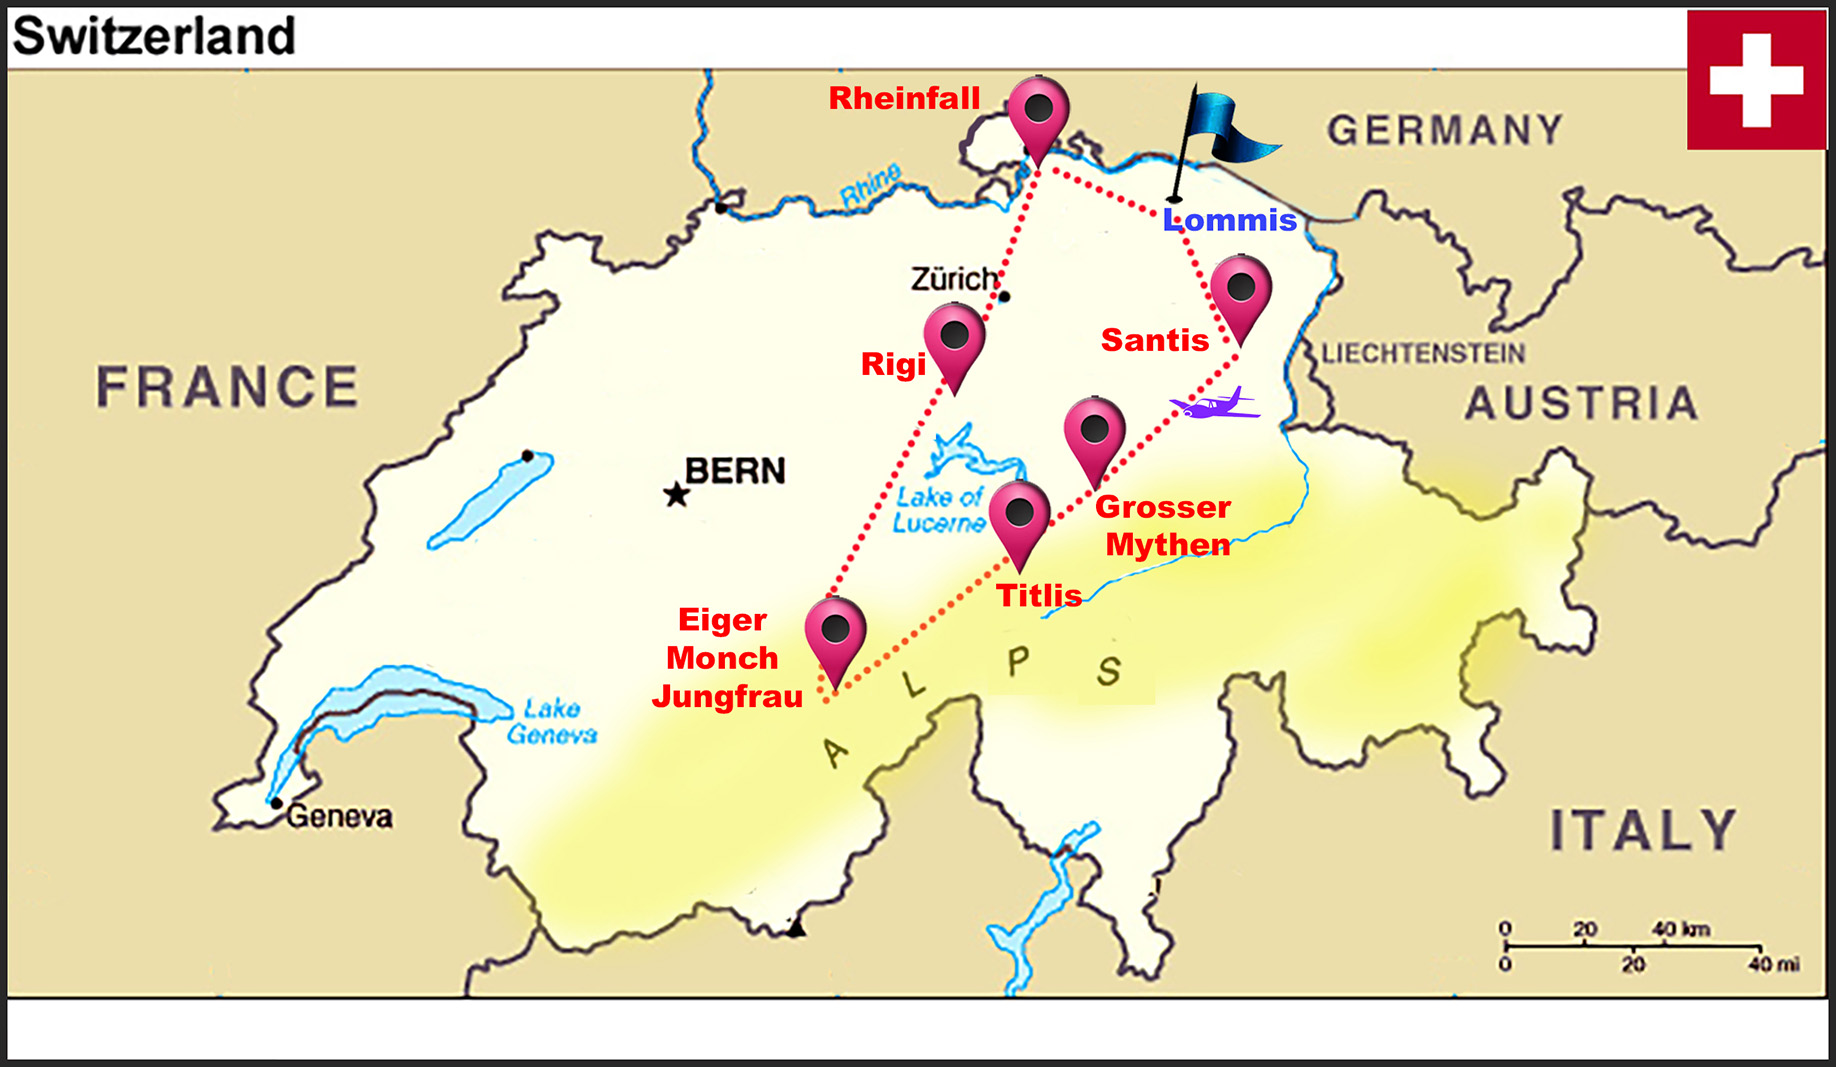 SWISS  MAP  SHOWING  THE  FLIGHT  ROUTE.